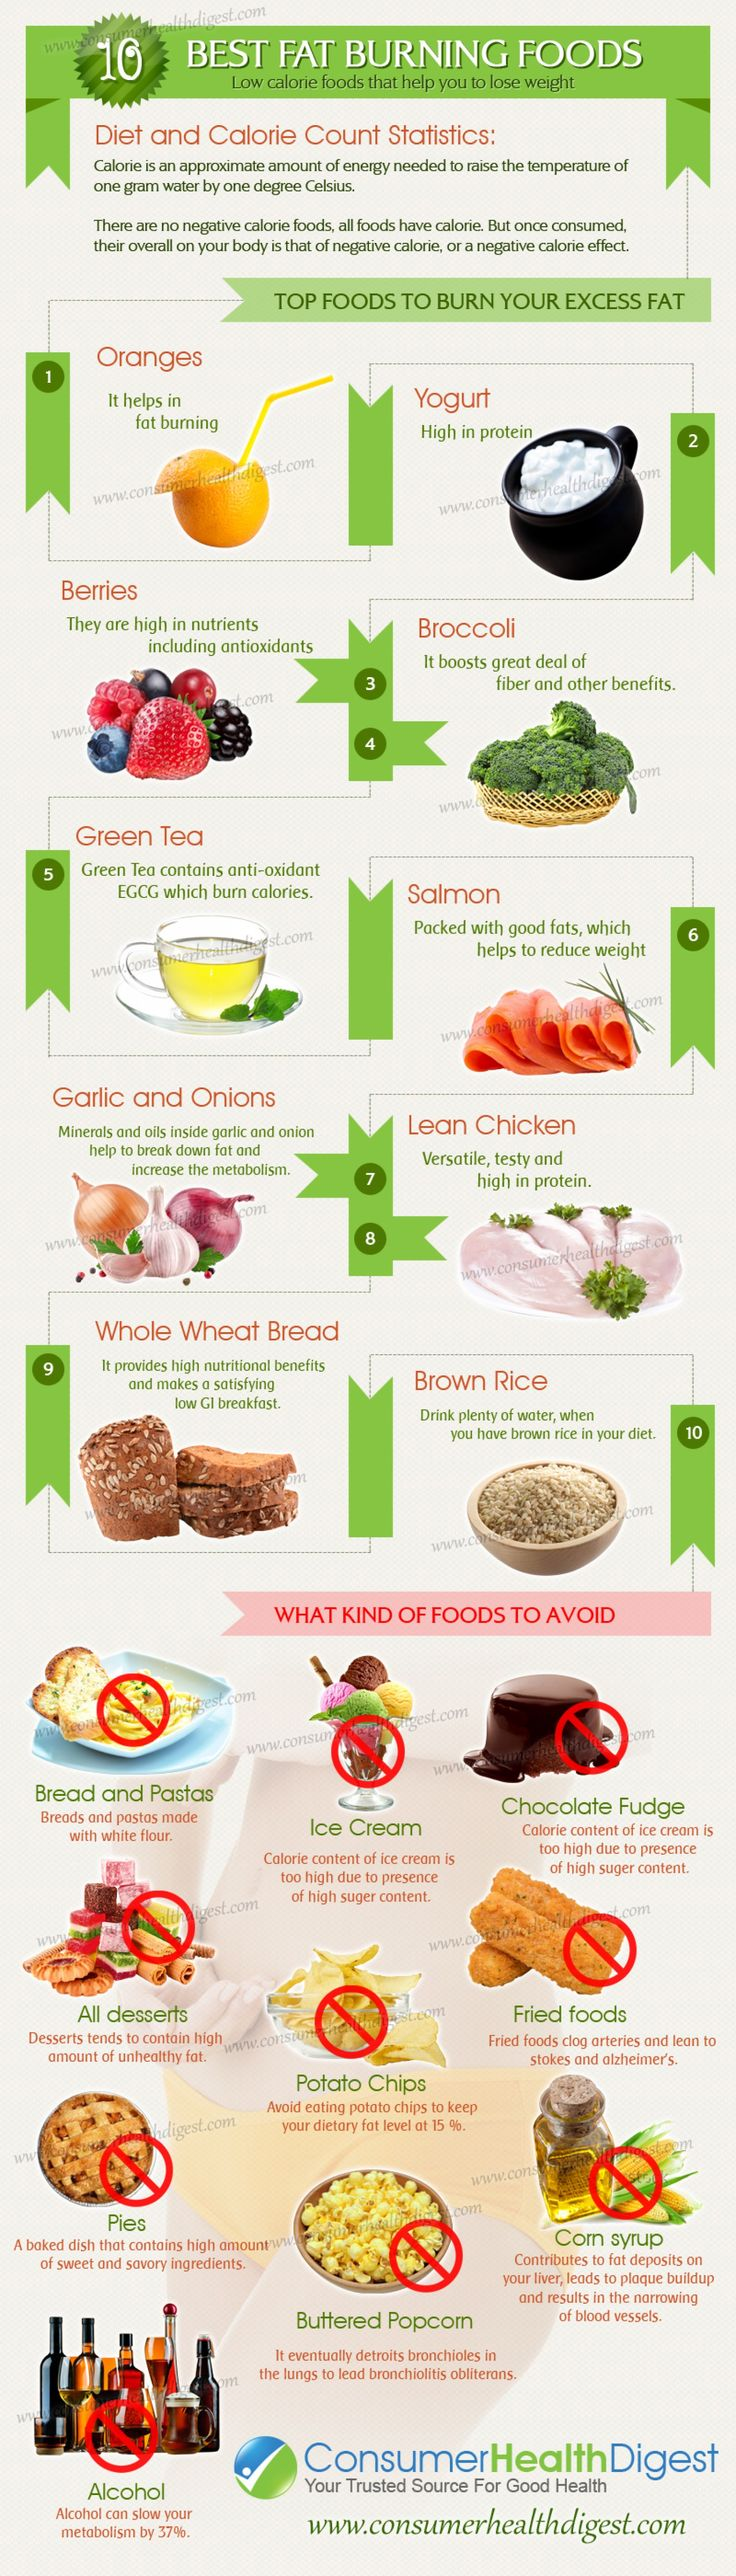 10 Best Fat Burning Foods  #Health #Well-being #Healthy  Re-pinned by www.avacationrental4me.com